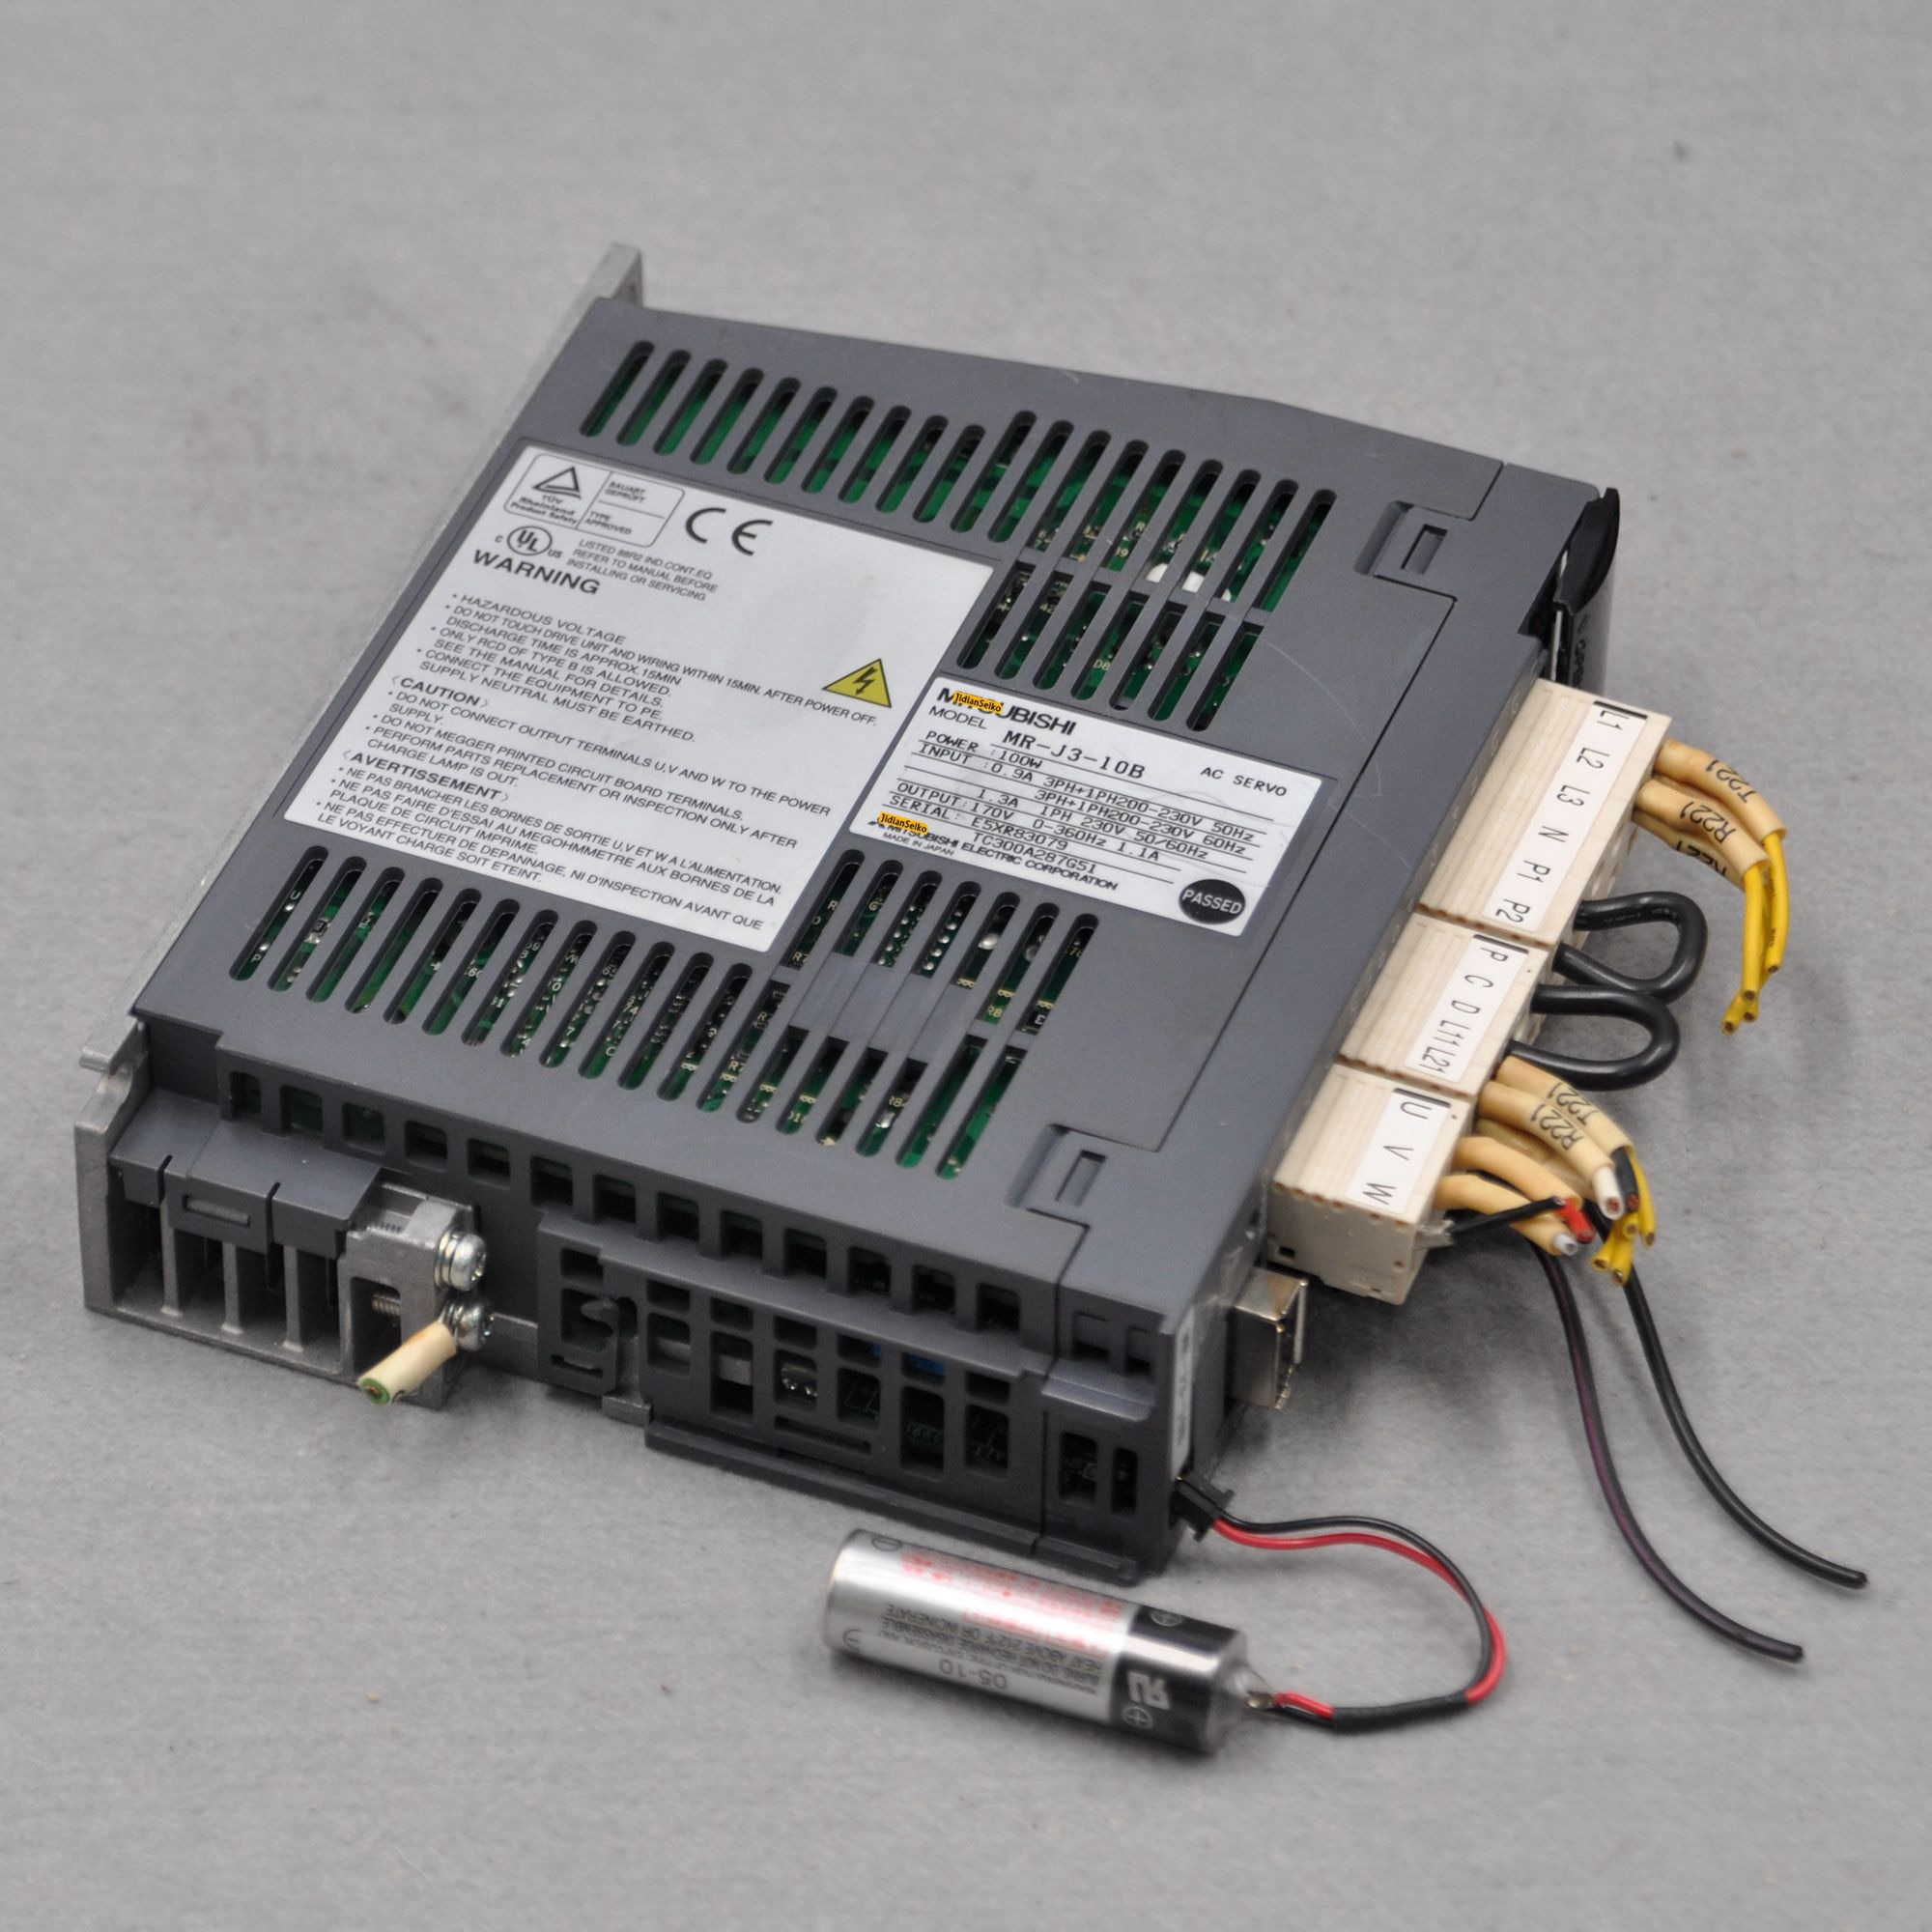 Japan J3 series  MR-J3-10B 100W MR-J3-20B 200W servo driver Can be equipped with HC-PQ13 motor